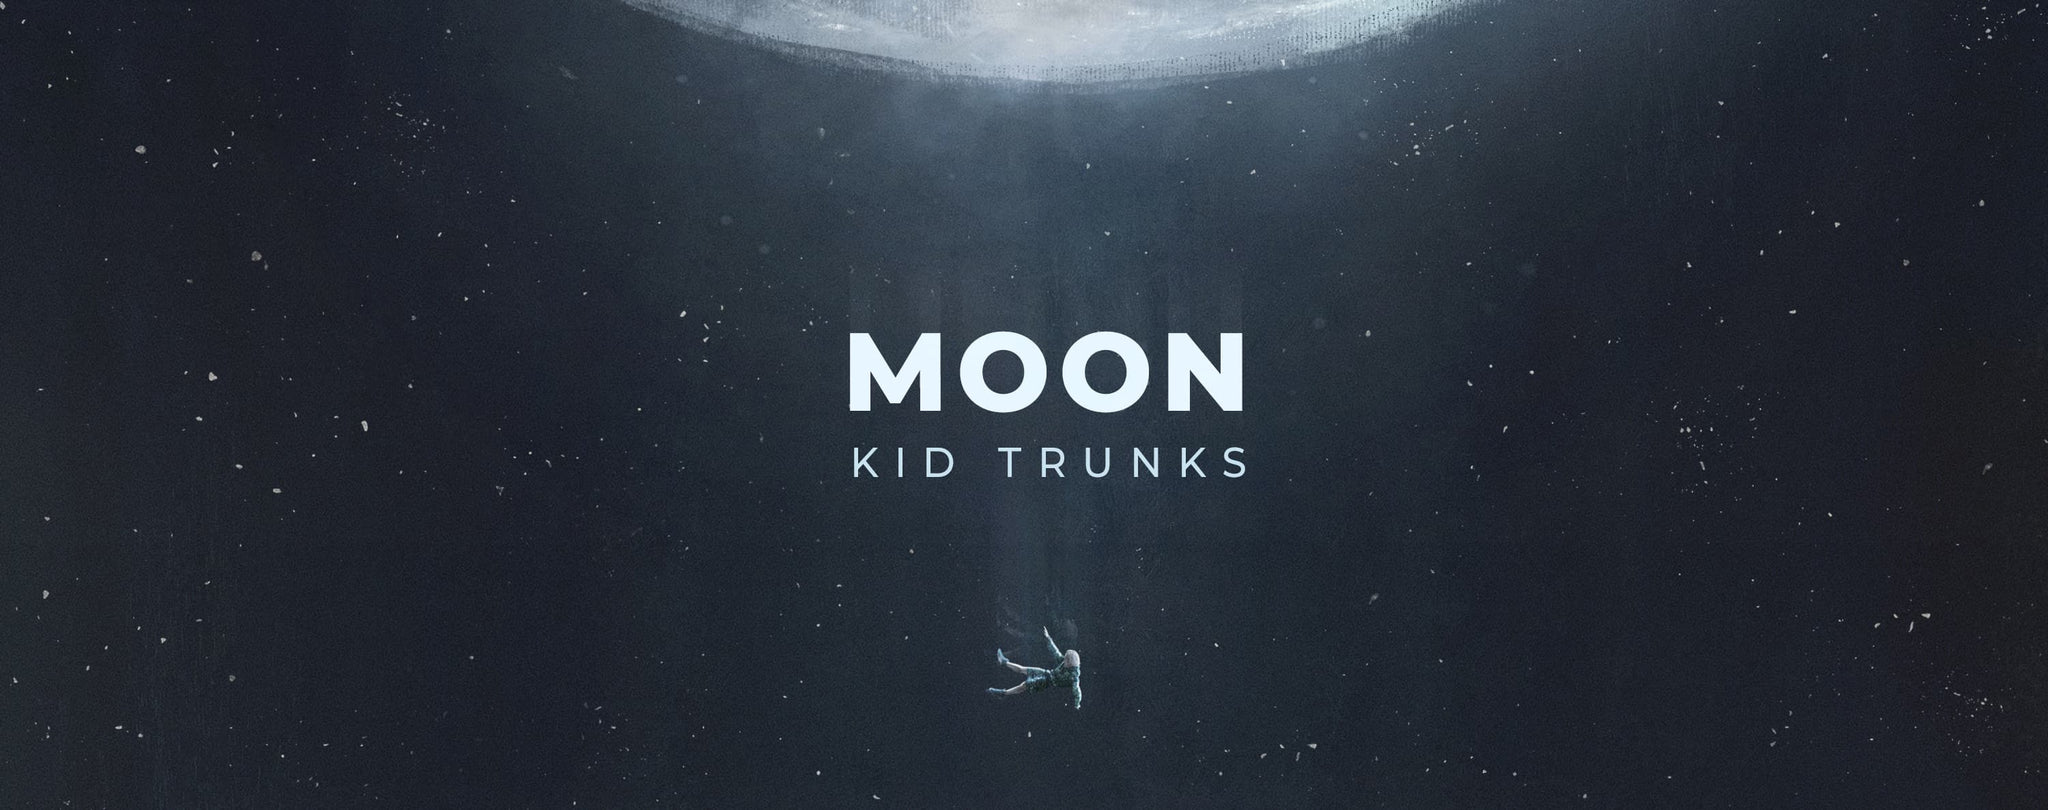 Kid Trunks - Moon Bundles